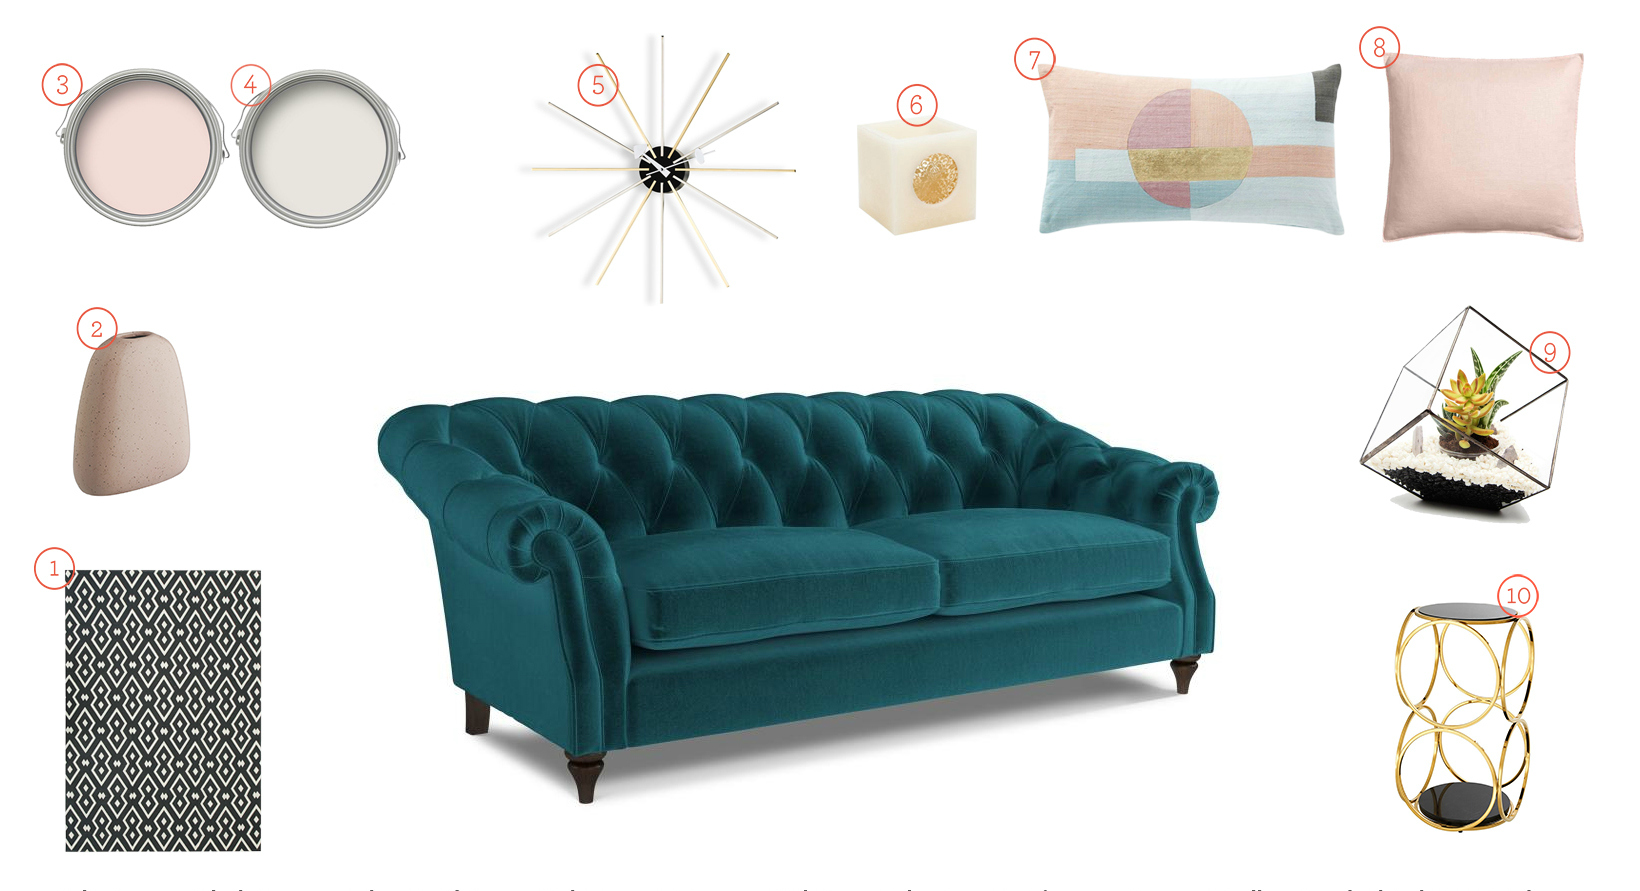 Get The Look: Dreaming In Teal